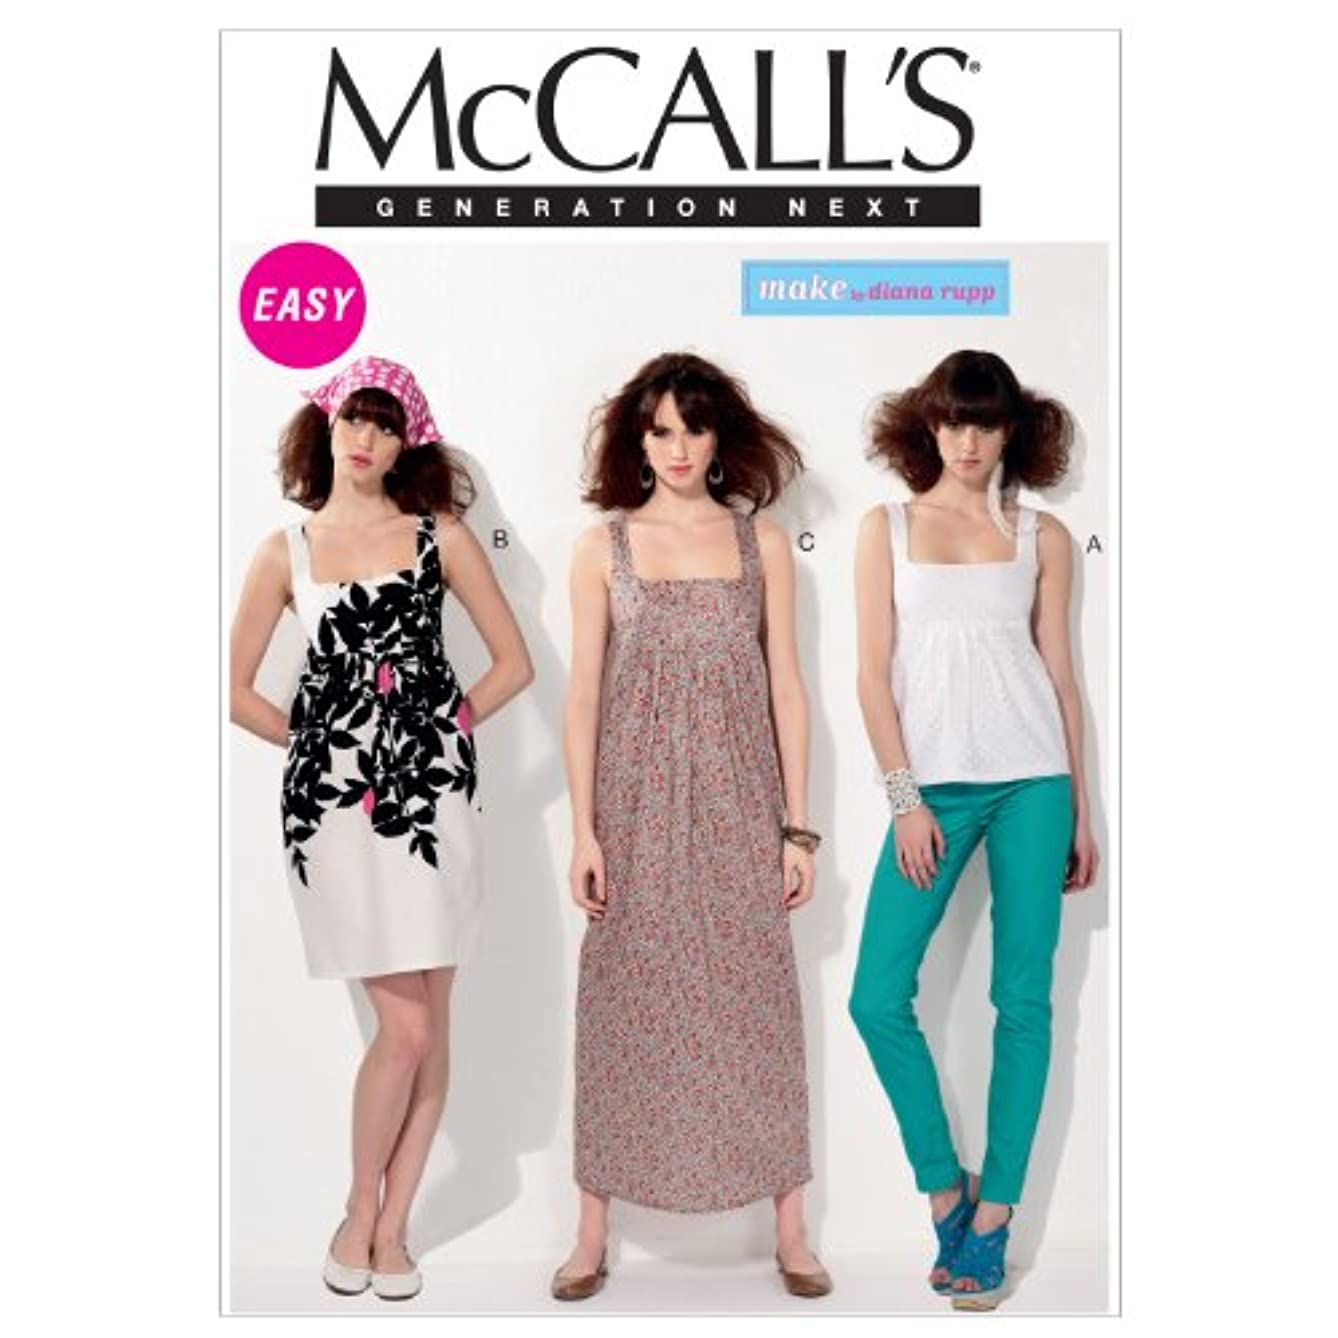 McCall's Generation Next MAKE by Diana Rupp Pattern 6560 Easy Misses Top and Dress with Variations Size 14-16-18-20-22